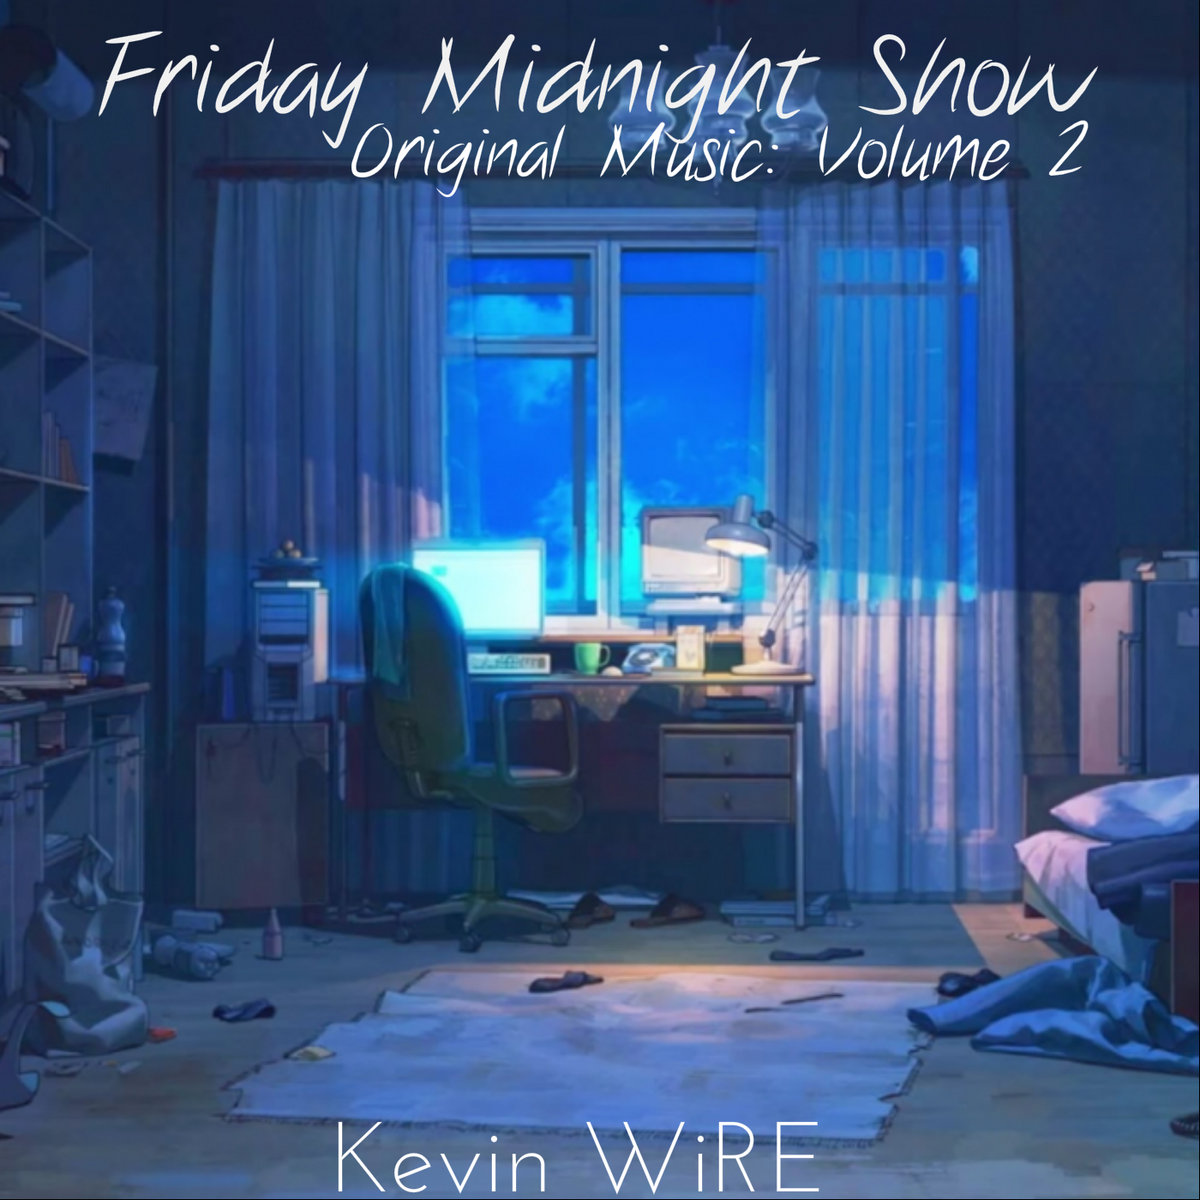 goodnight or good morning (post-show v2) | Kevin WiRE